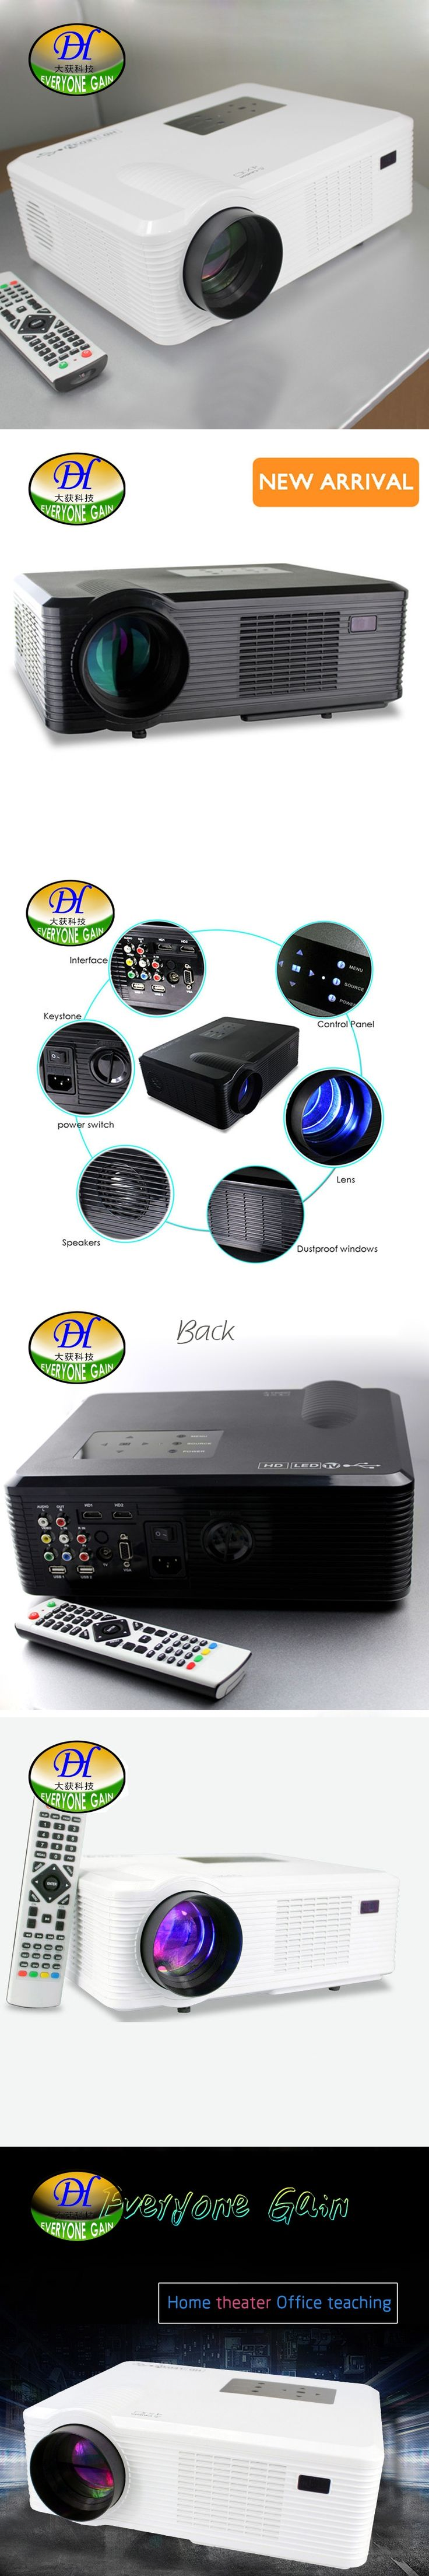 Everyone Gain TL261+ 3D LCD Projector Full HD Widescreen Home Theater Proyector 50000hs lamp life Support 720P 1080P LED Beamer